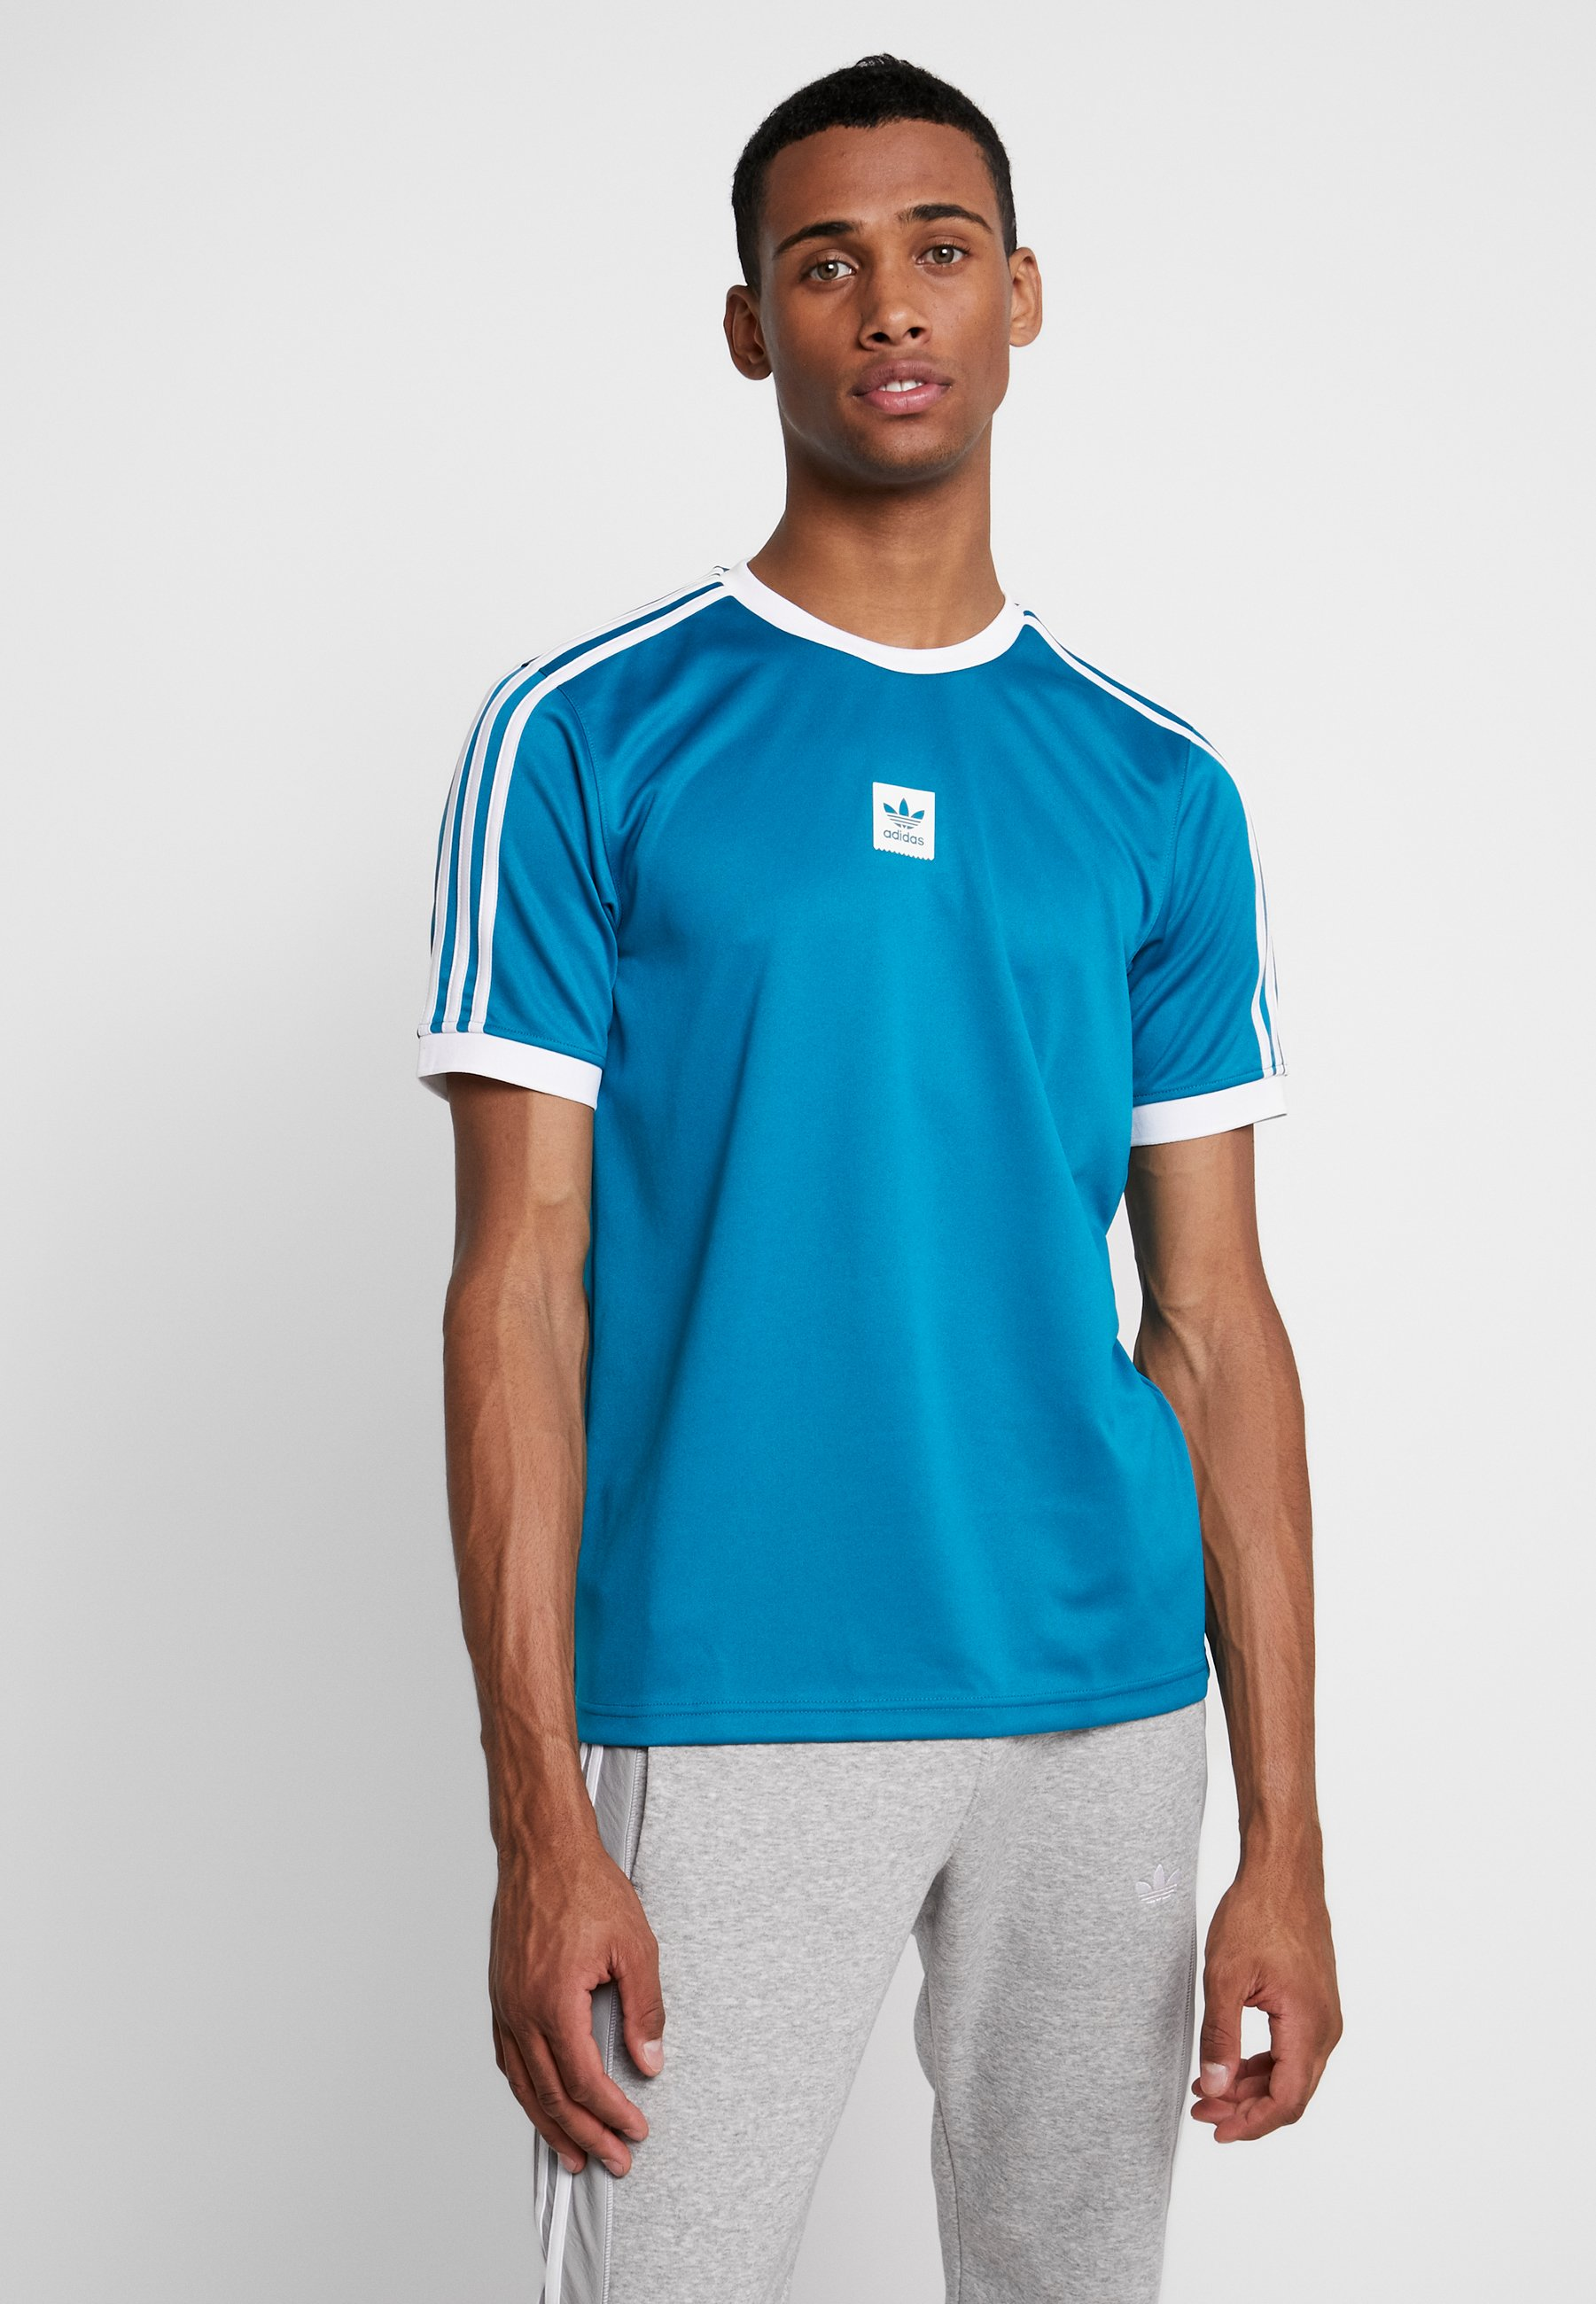 shirt ClubT Active Imprimé Teal Originals Adidas white 5jR4AL3